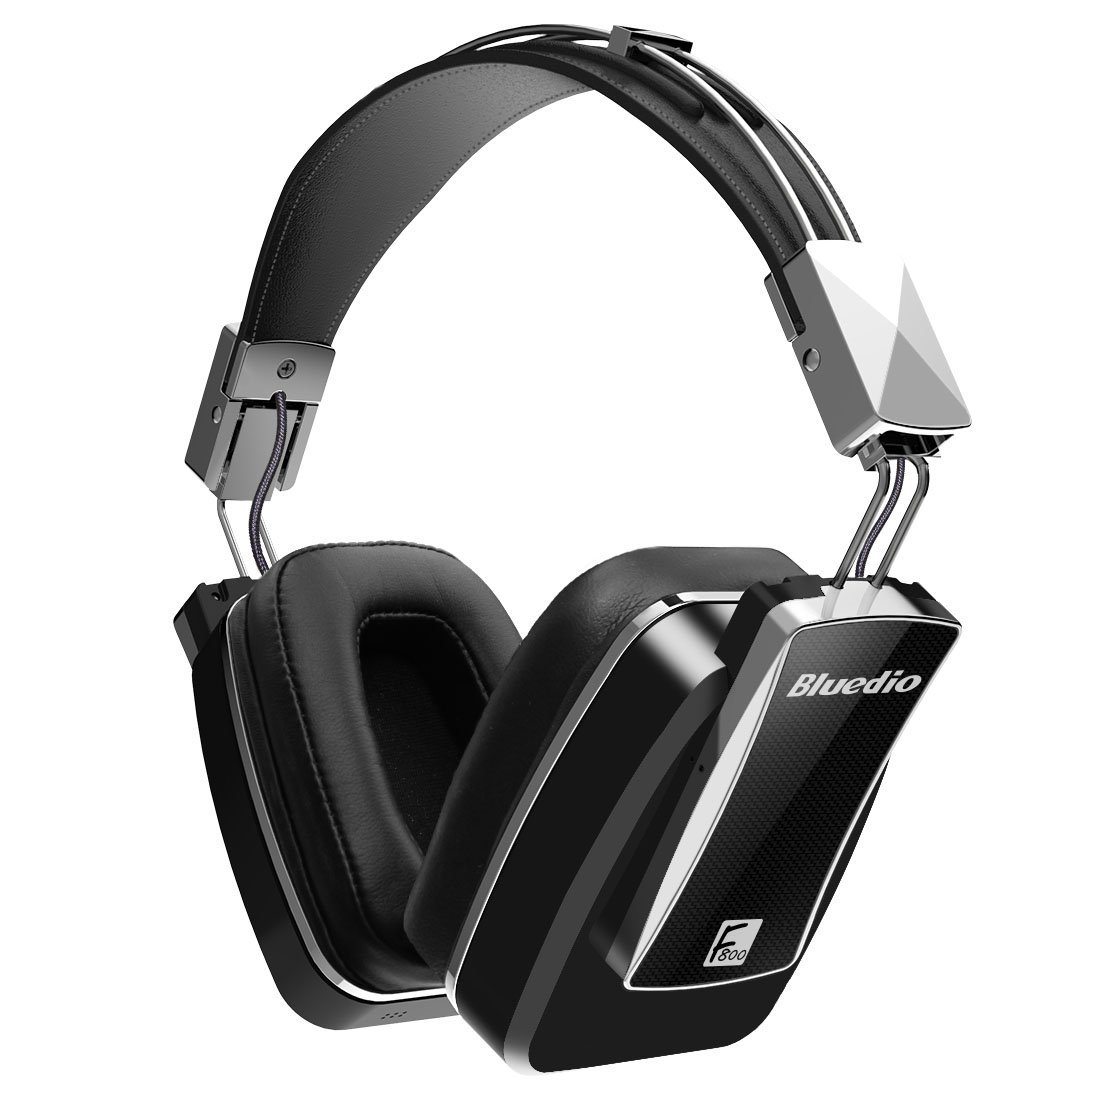 Bluedio F800 Active Noise Cancelling Foldable Over-ear Wireless Bluetooth Headphones with Mic(Black) columns bluetooth speakers bluedio t4s active noise cancelling wireless bluetooth headphones wireless headset with mic